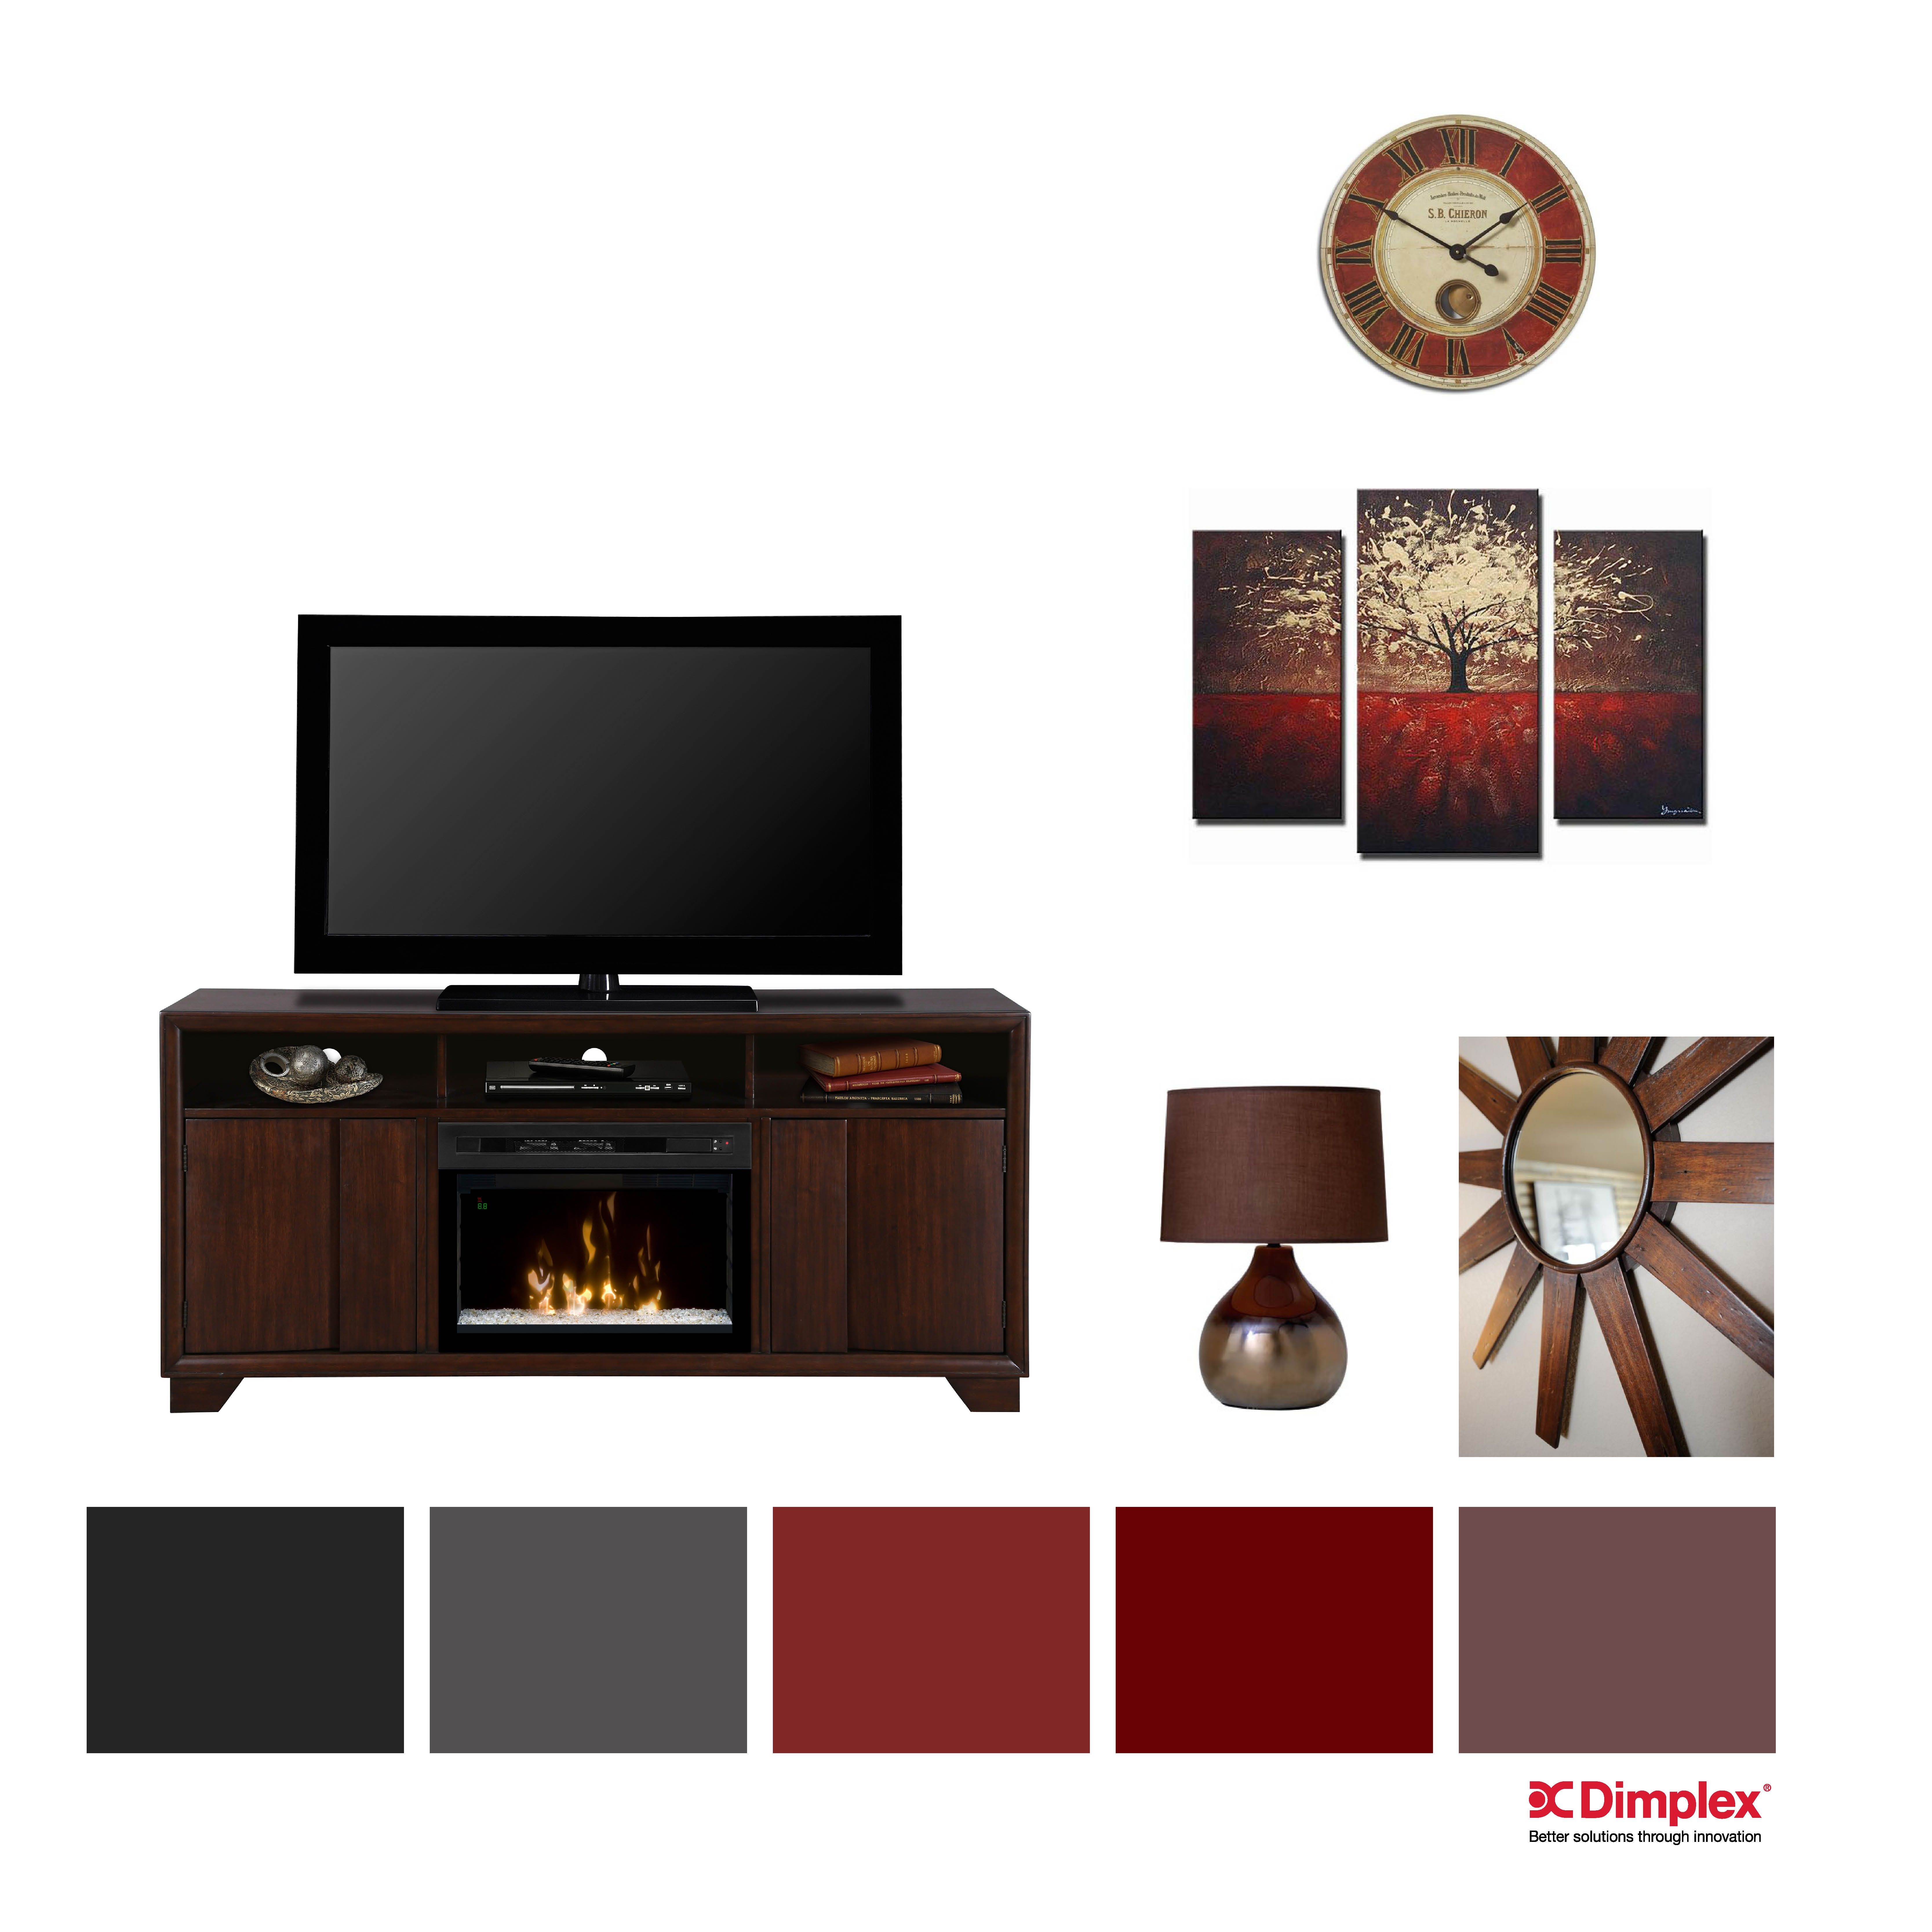 reds maroon mediaconsole fireplace add a little sophistication